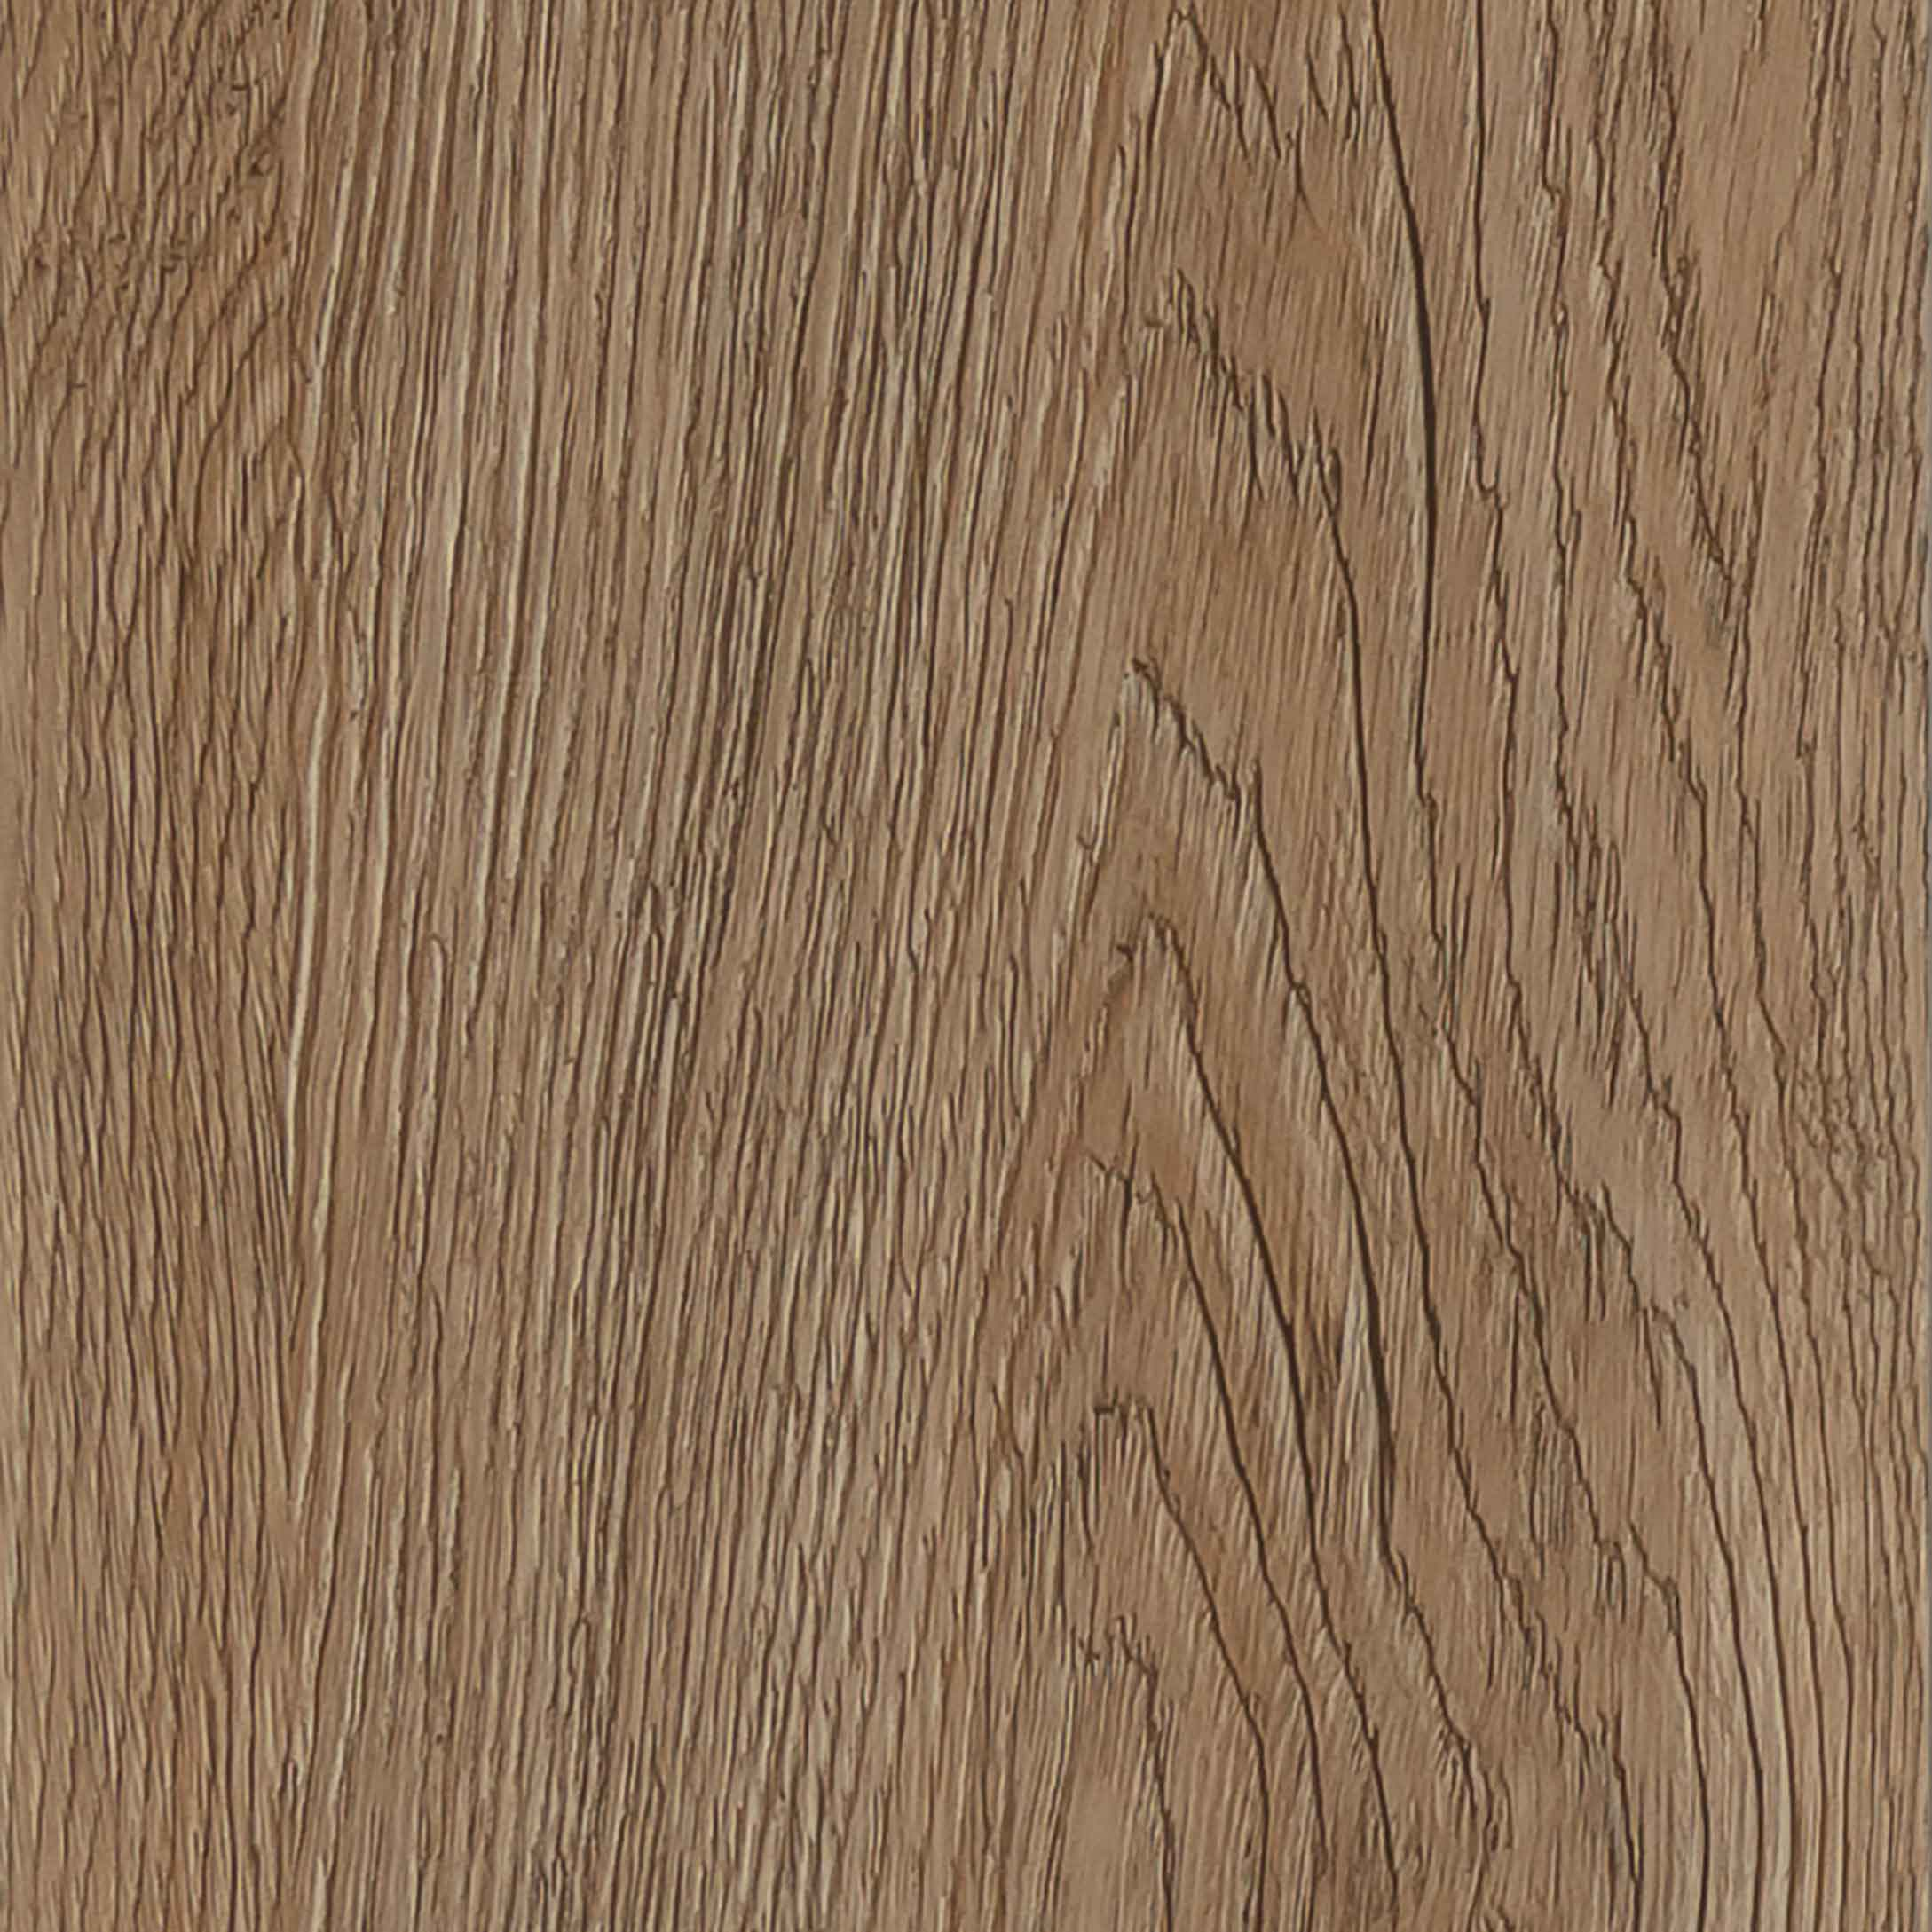 Authentic Rustic Oak 2865